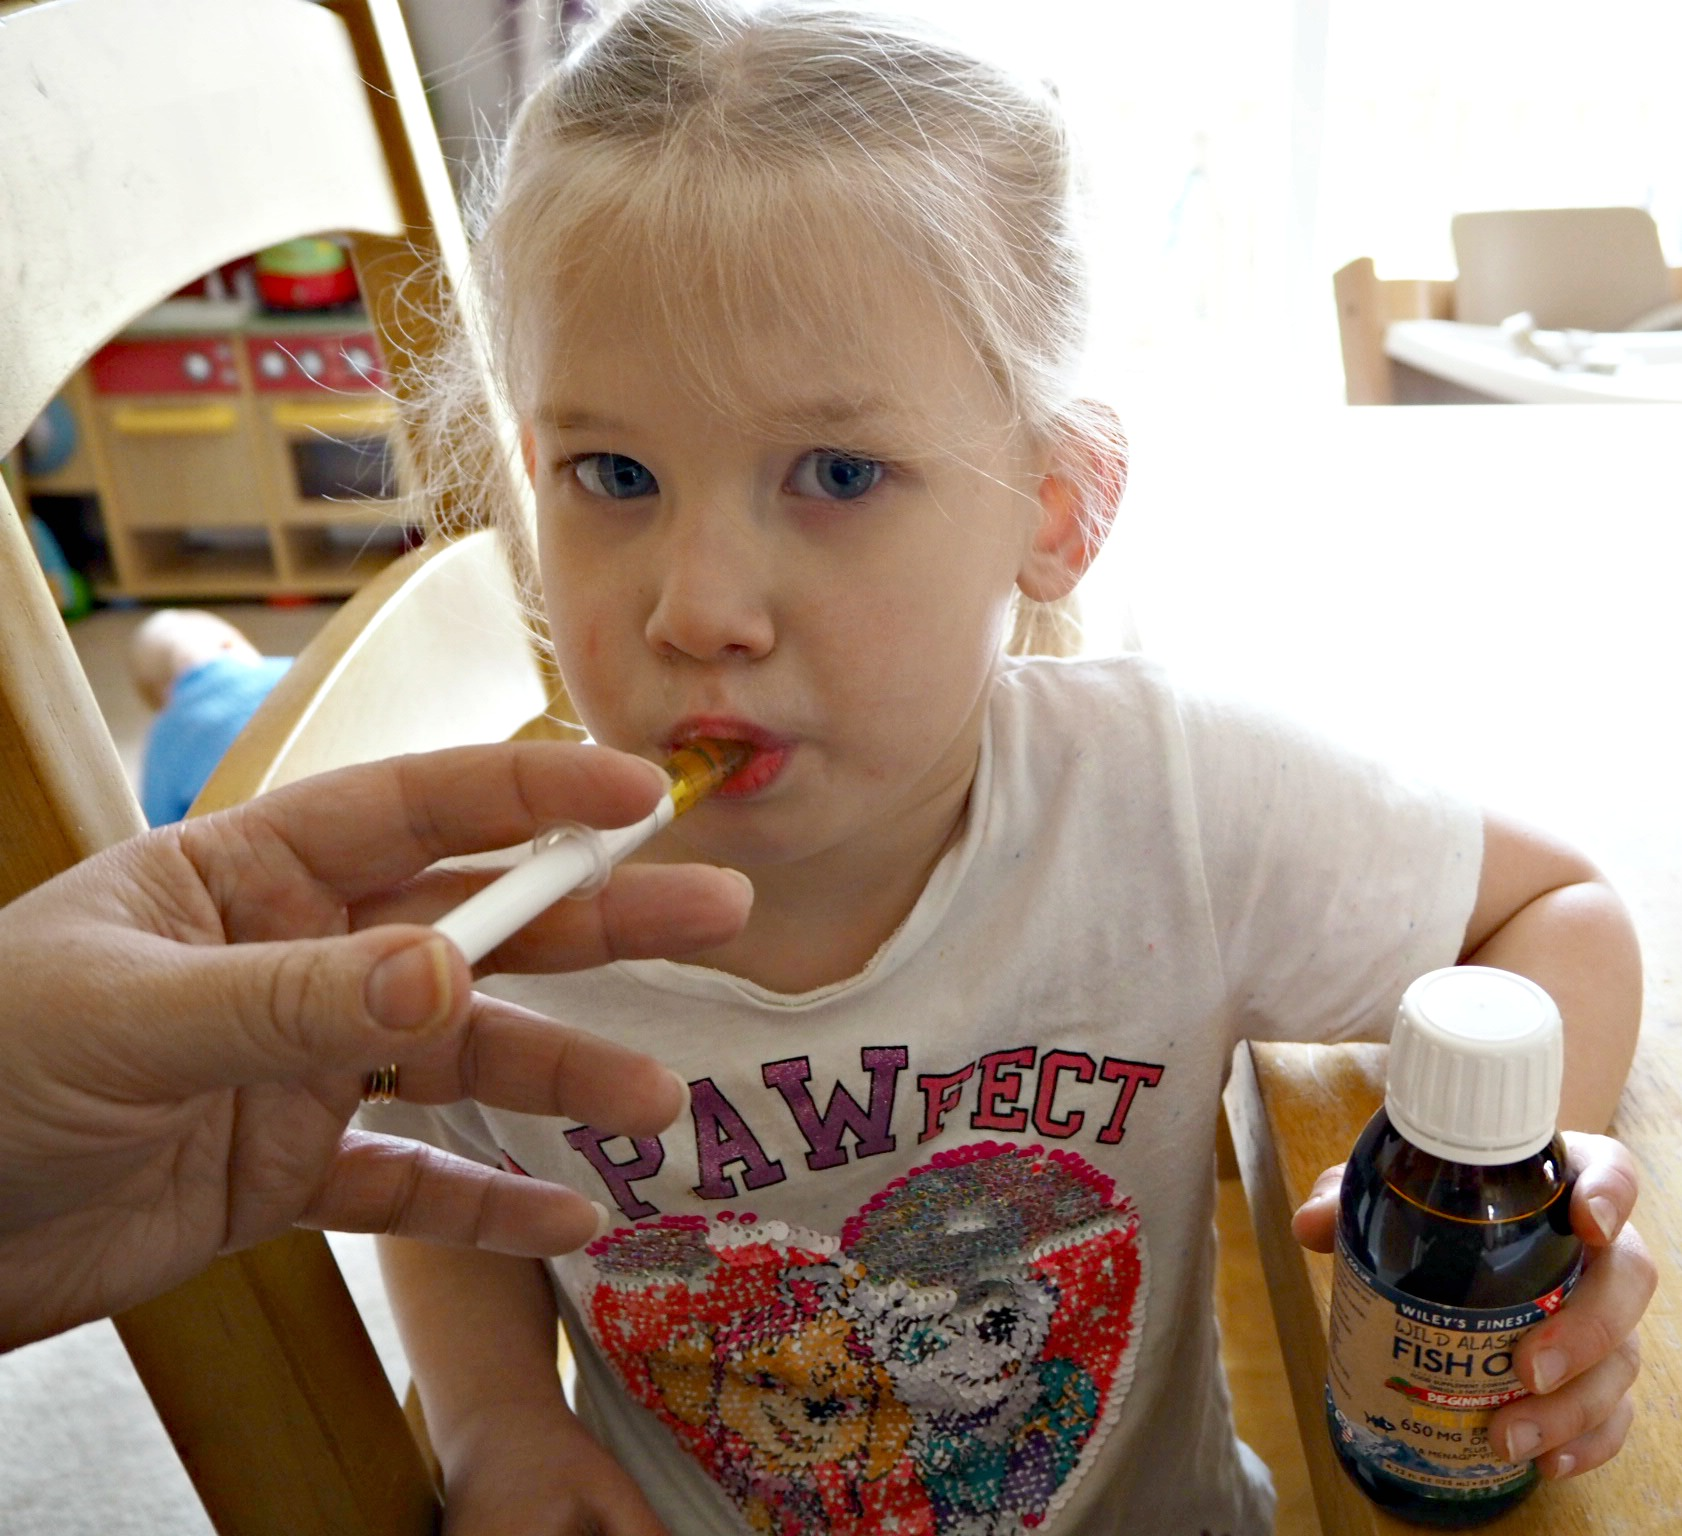 Wiley's Finest Beginner's DHA and Vitamin K2 - Aria taking fish oil